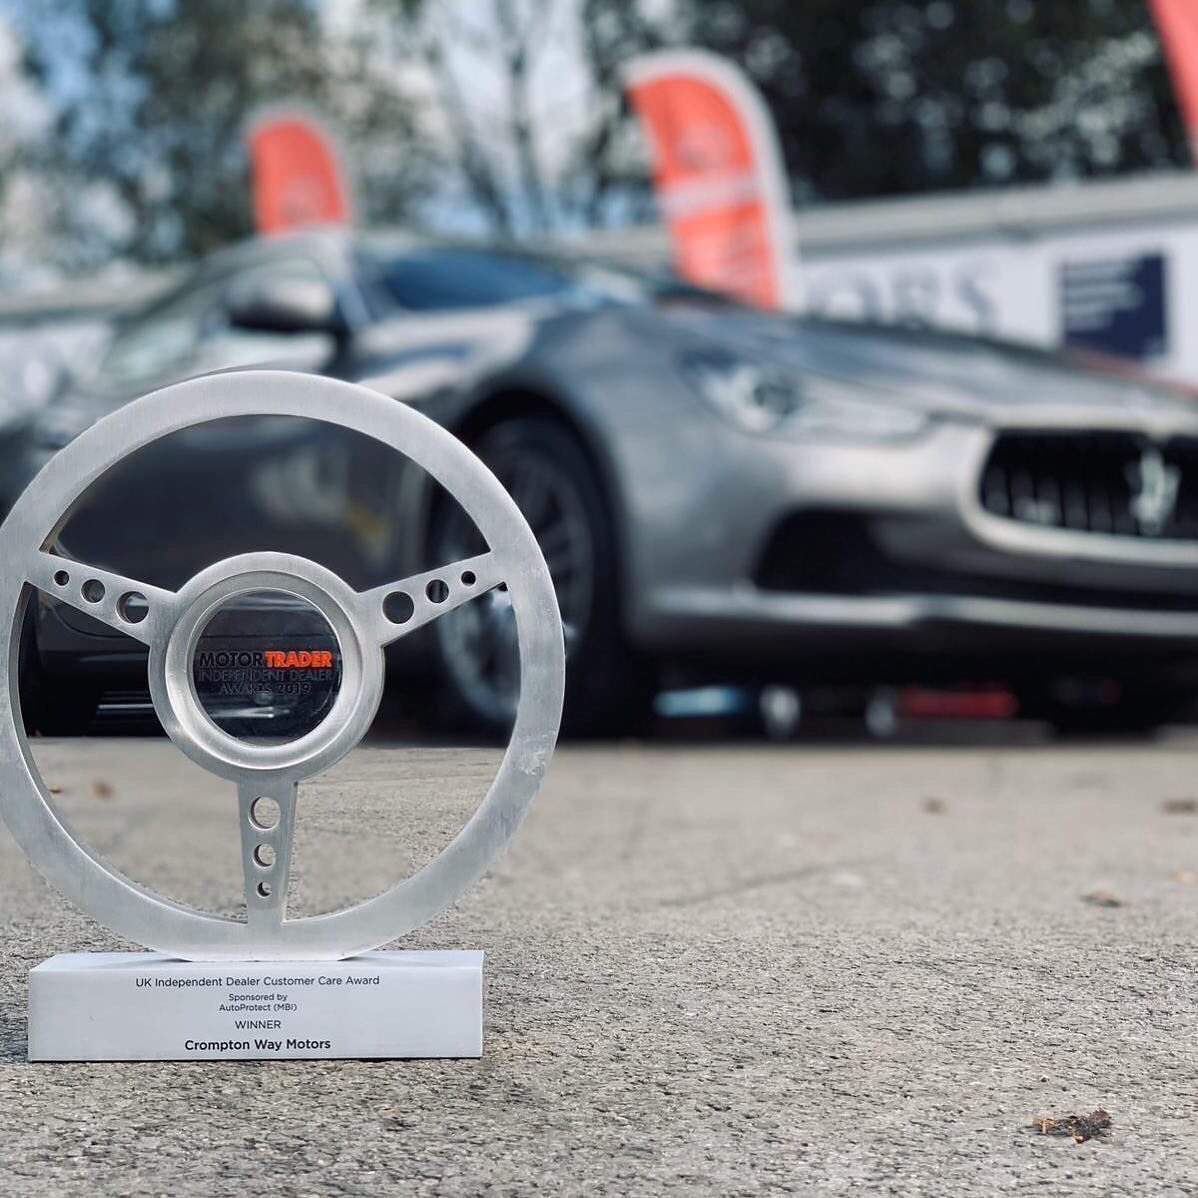 Out car shopping today we are open 11am to 4pm pop in to view our fantastic range of quality used cars visit the MotoTrader Customer Care Award Winners 2019 #IndependentDealership #FamilyRun #CarFinance… http://instagram.com/p/B8D9HezBm_L/…pic.twitter.com/3nrXzFKsND